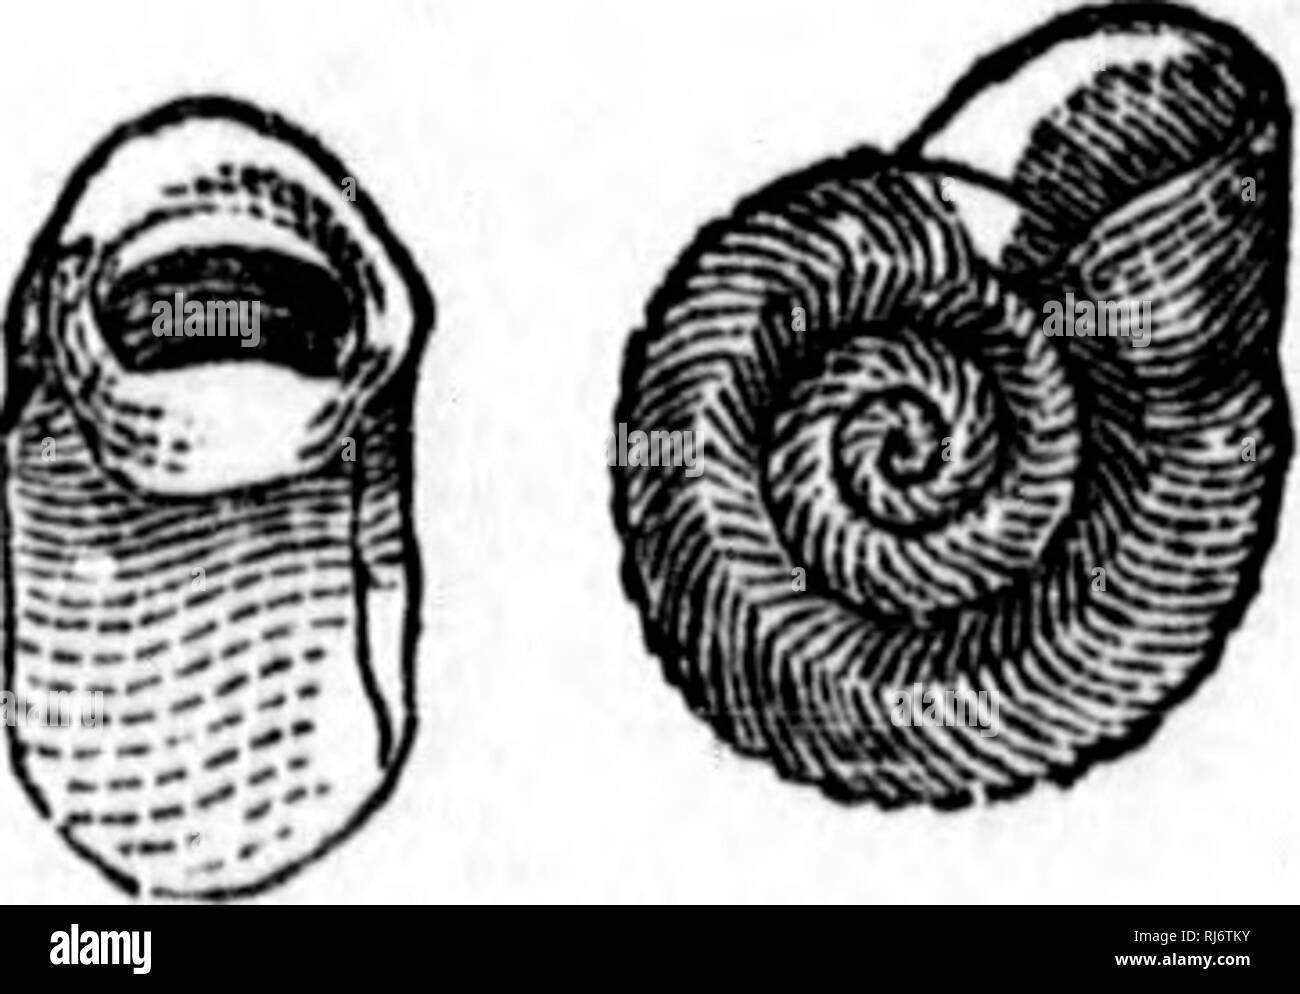 . Handbook of zoology [microform] : with examples from Canadian species, recent and fossil :. Zoology; Invertebrates; Zoologie; Invertébrés. h 182. Physa iiETKROSTRoiMiA. Say, 183. Ancylus kivularis, Say. 184. A. Fusru-s, Adams, Fig. 185. Fill. 186. Fly. 184, Fig. 187. /. Please note that these images are extracted from scanned page images that may have been digitally enhanced for readability - coloration and appearance of these illustrations may not perfectly resemble the original work.. Dawson, J. W. (John William), Sir, 1820-1899. Montreal : Dawson - Stock Image